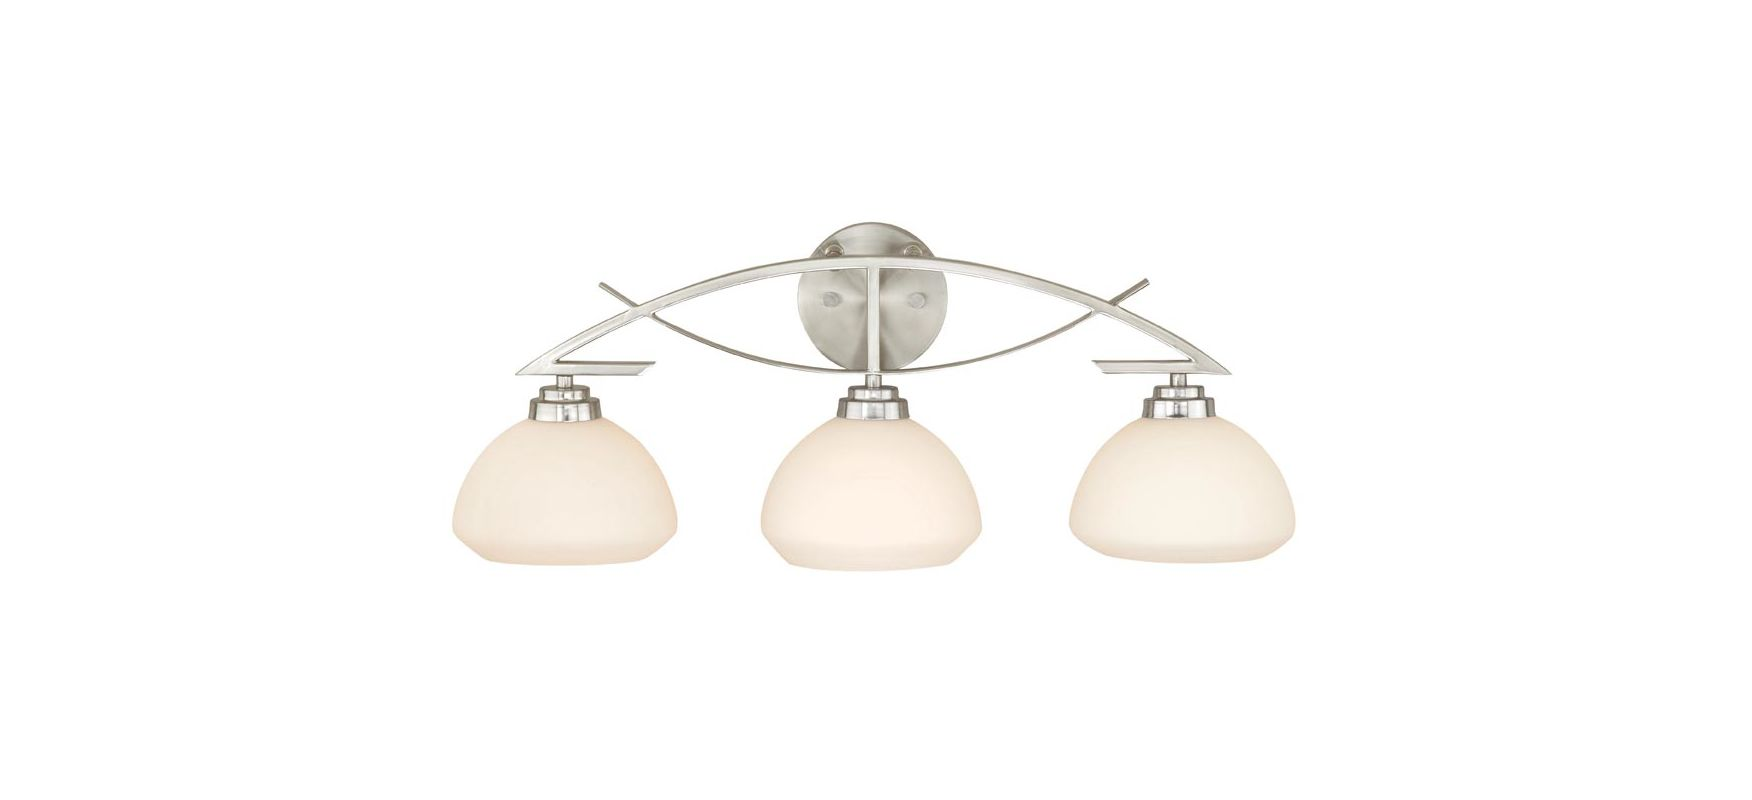 Vaxcel Lighting SA-VLD003 Solna 3 Light Bathroom Vanity Light - 12.75